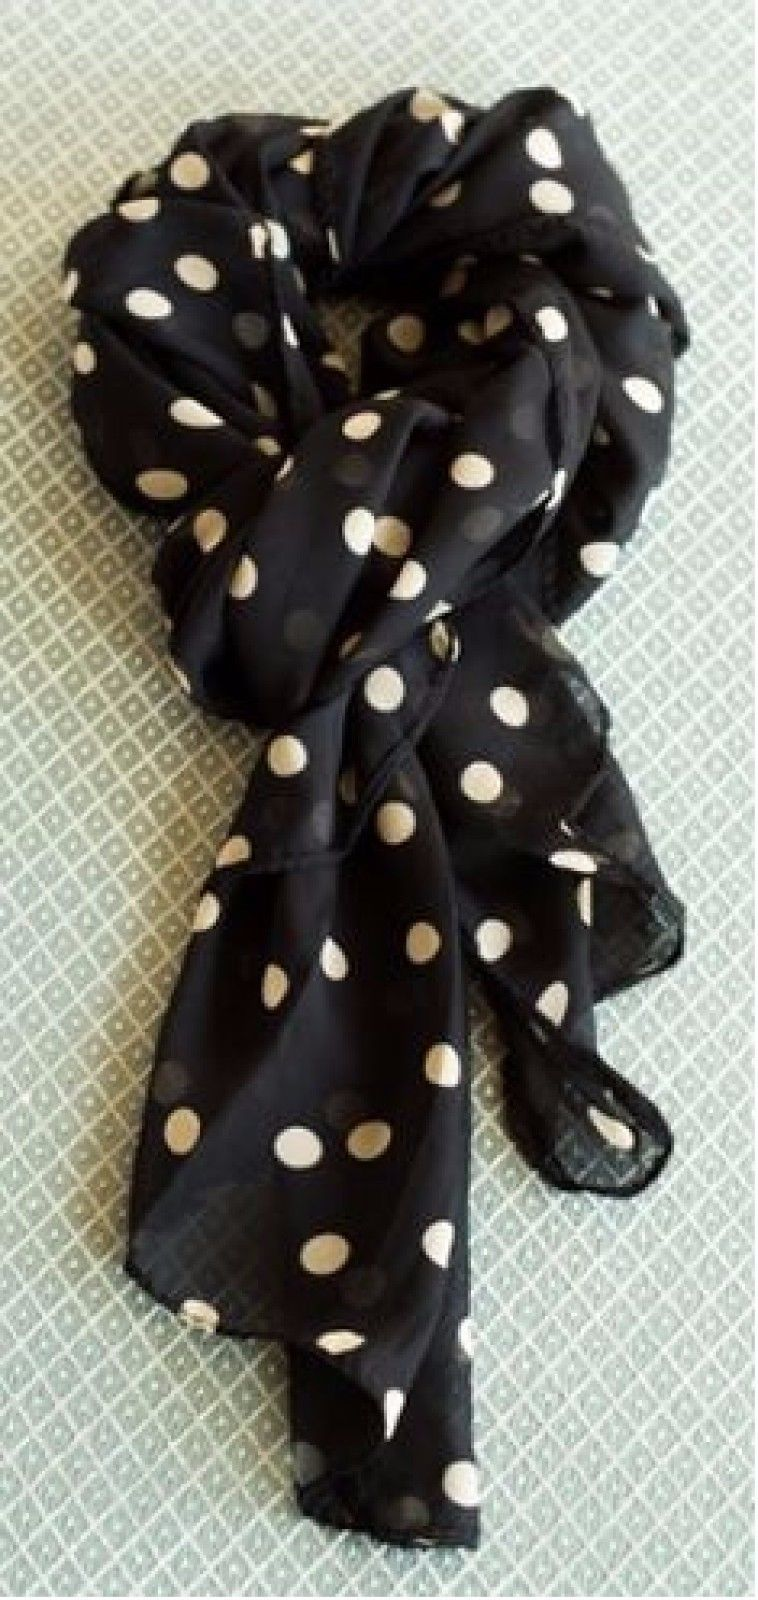 Wear Freedom Black Scarf With Tan Polka Dot Scarves Shawl Stole Wrap